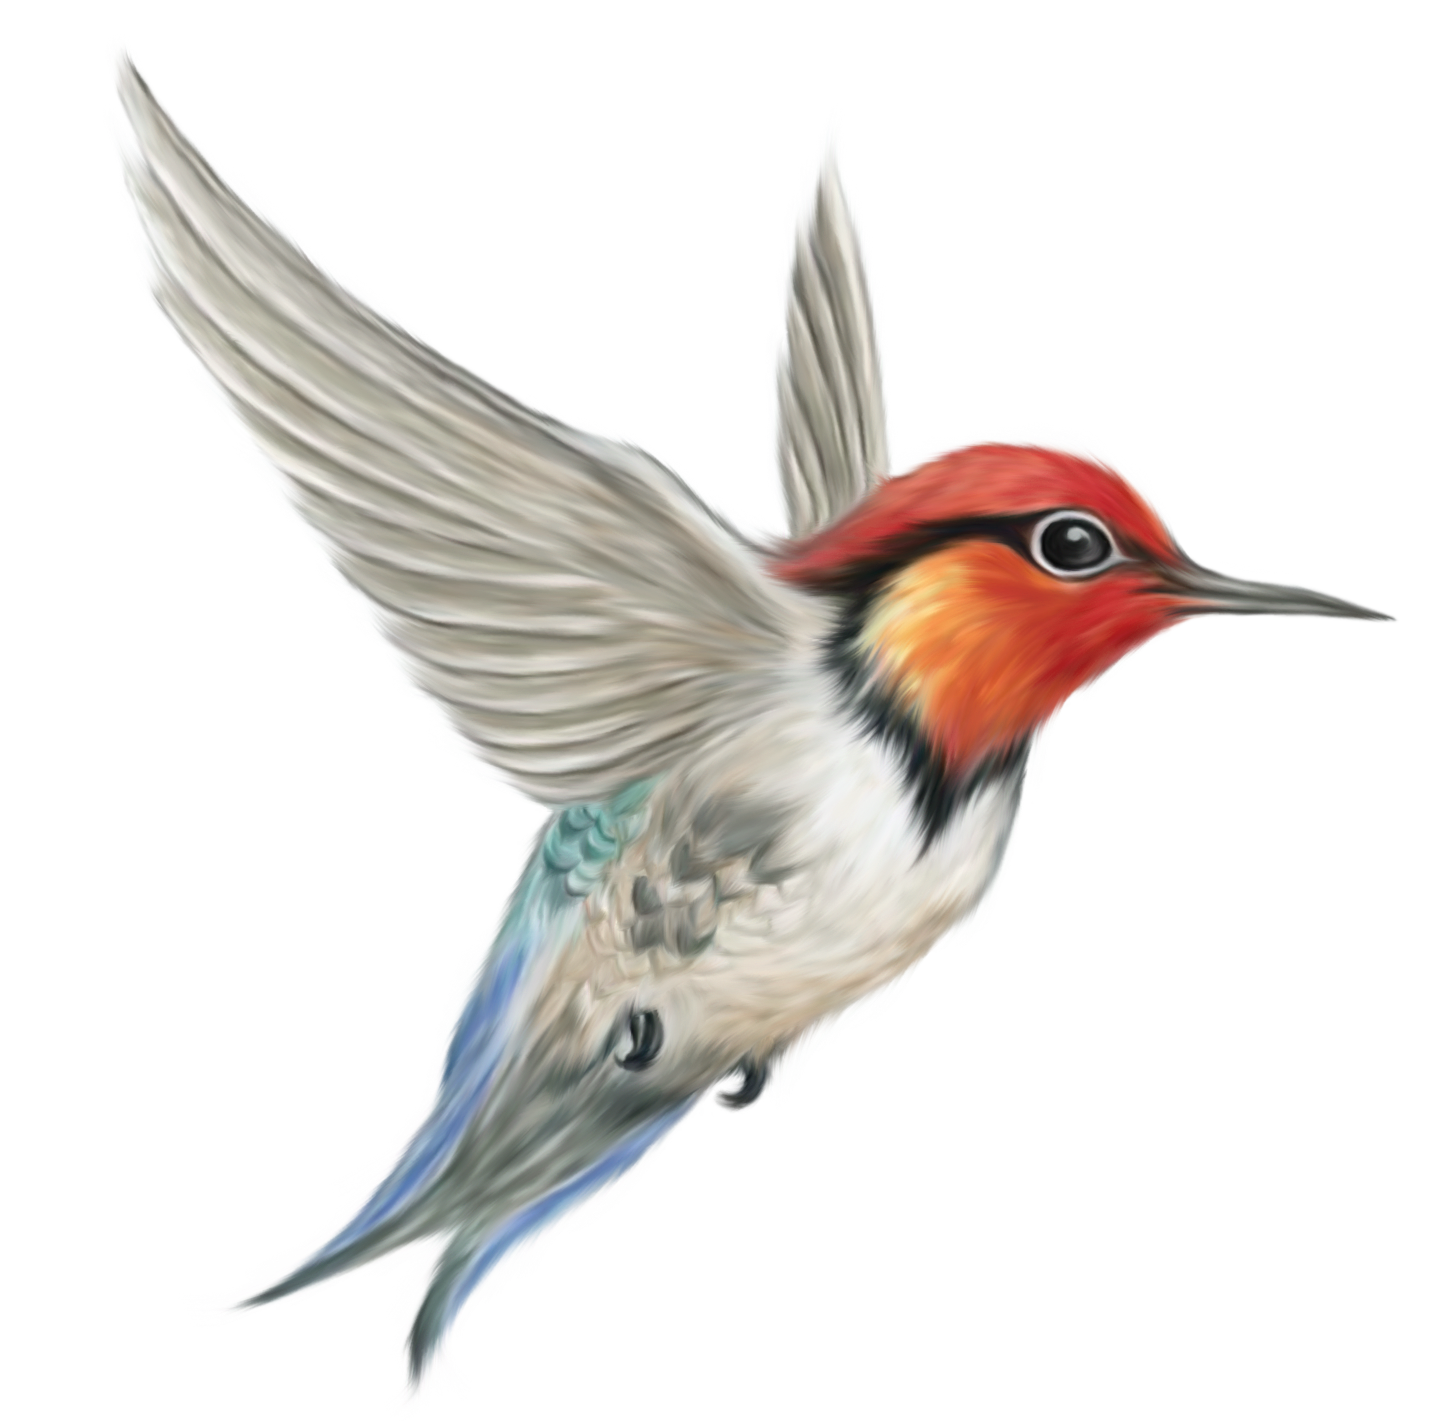 Bird HD PNG - 96798